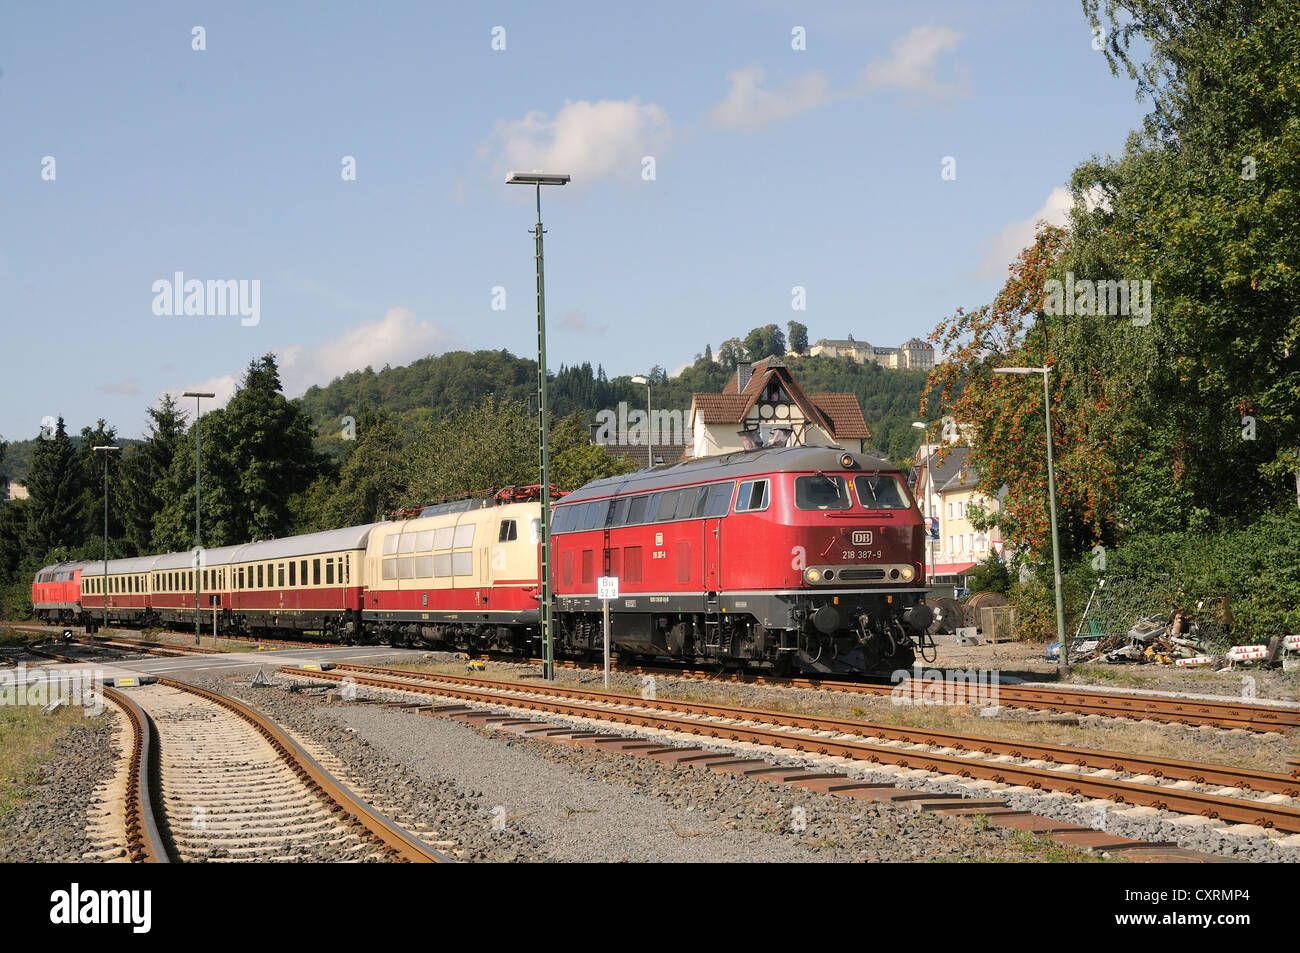 Rheingold train with a TEE locomotive 103 235 being pulled by a Class 218 diesel engine, in front of Schloss Wittgenstein - Stock Image